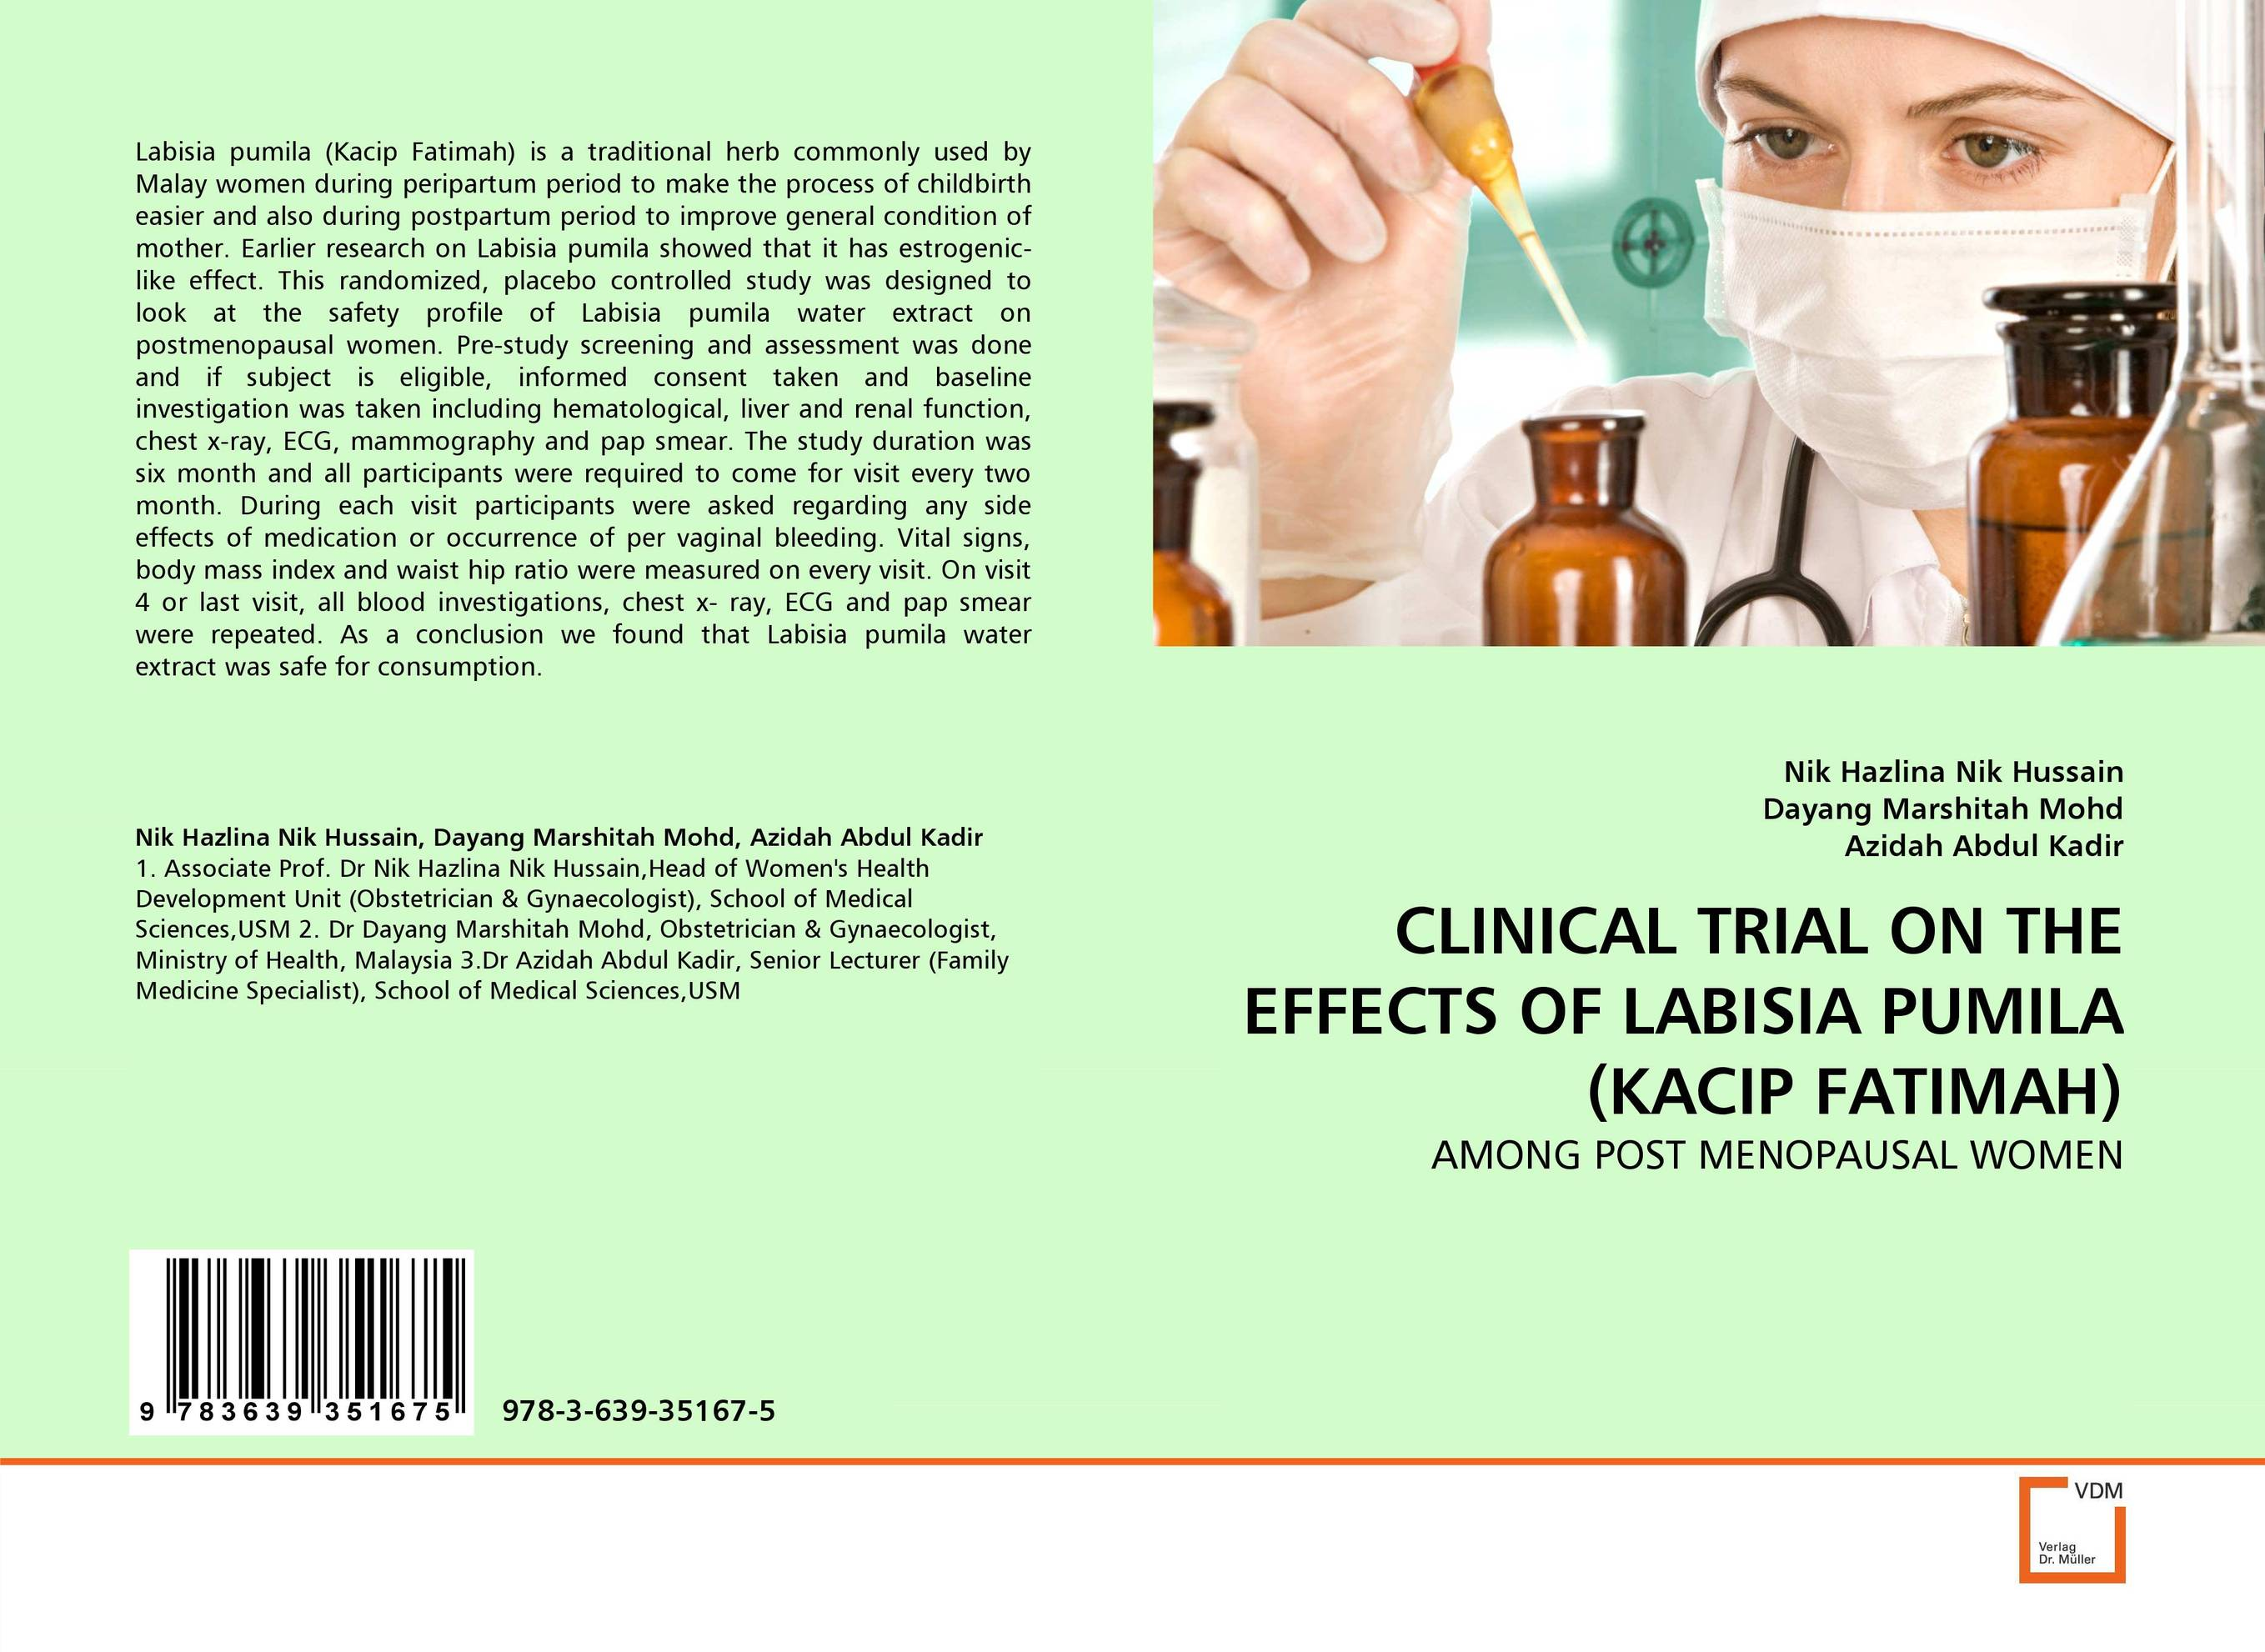 CLINICAL TRIAL ON THE EFFECTS OF LABISIA PUMILA (KACIP FATIMAH) x ray crystallographic and theoretical investigations on aromatic compounds